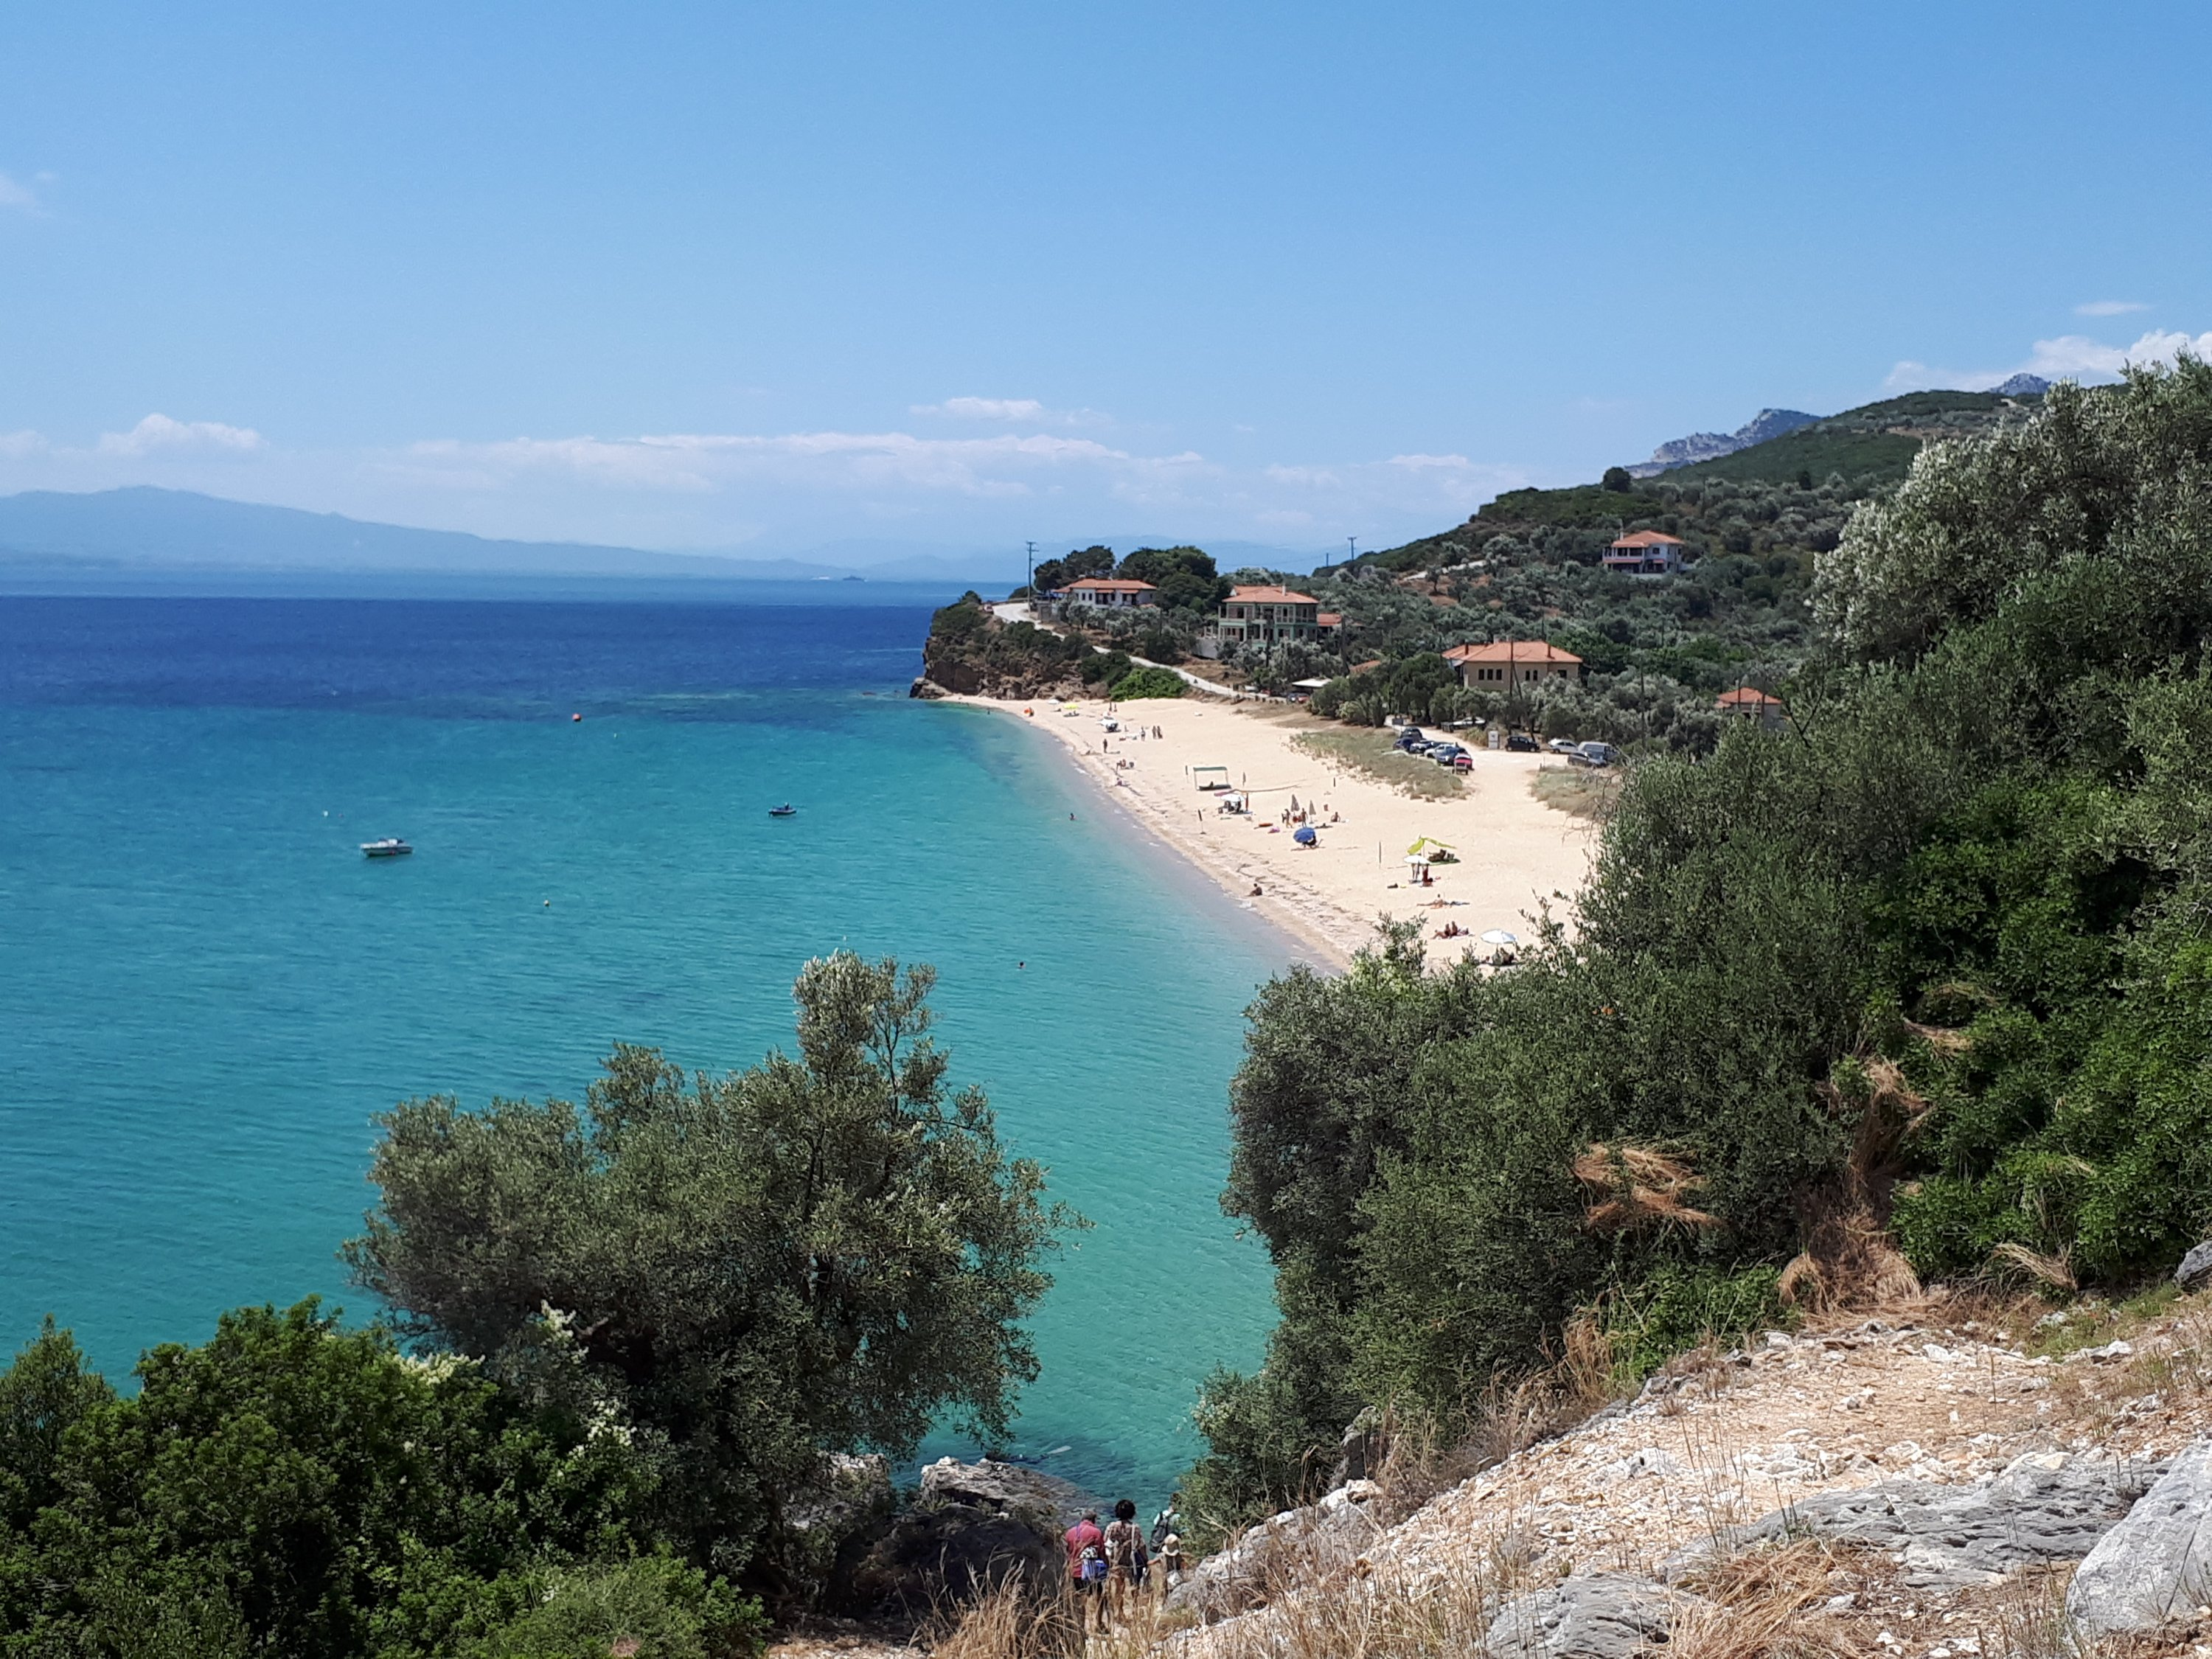 Panoramic view of Mikrò Beach, near the village of Plataniàs in Southern Pelion Central Greece